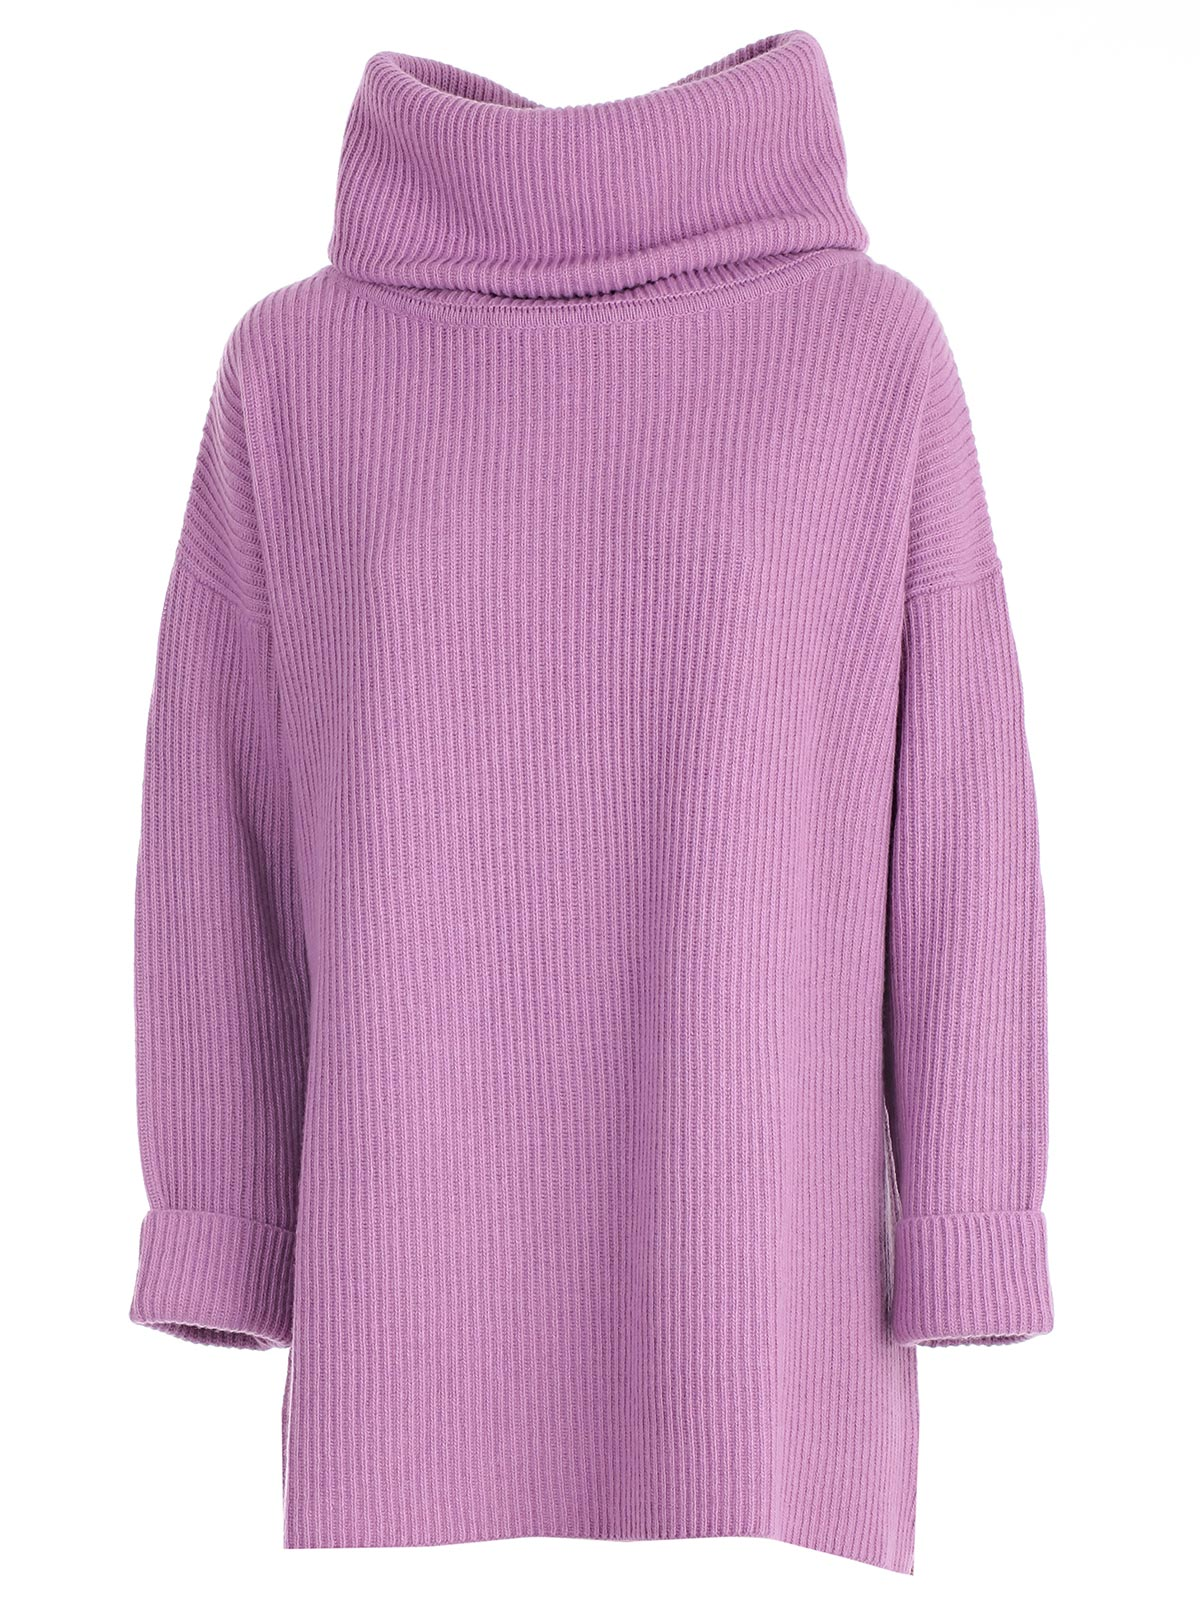 Picture of Blugirl Sweater